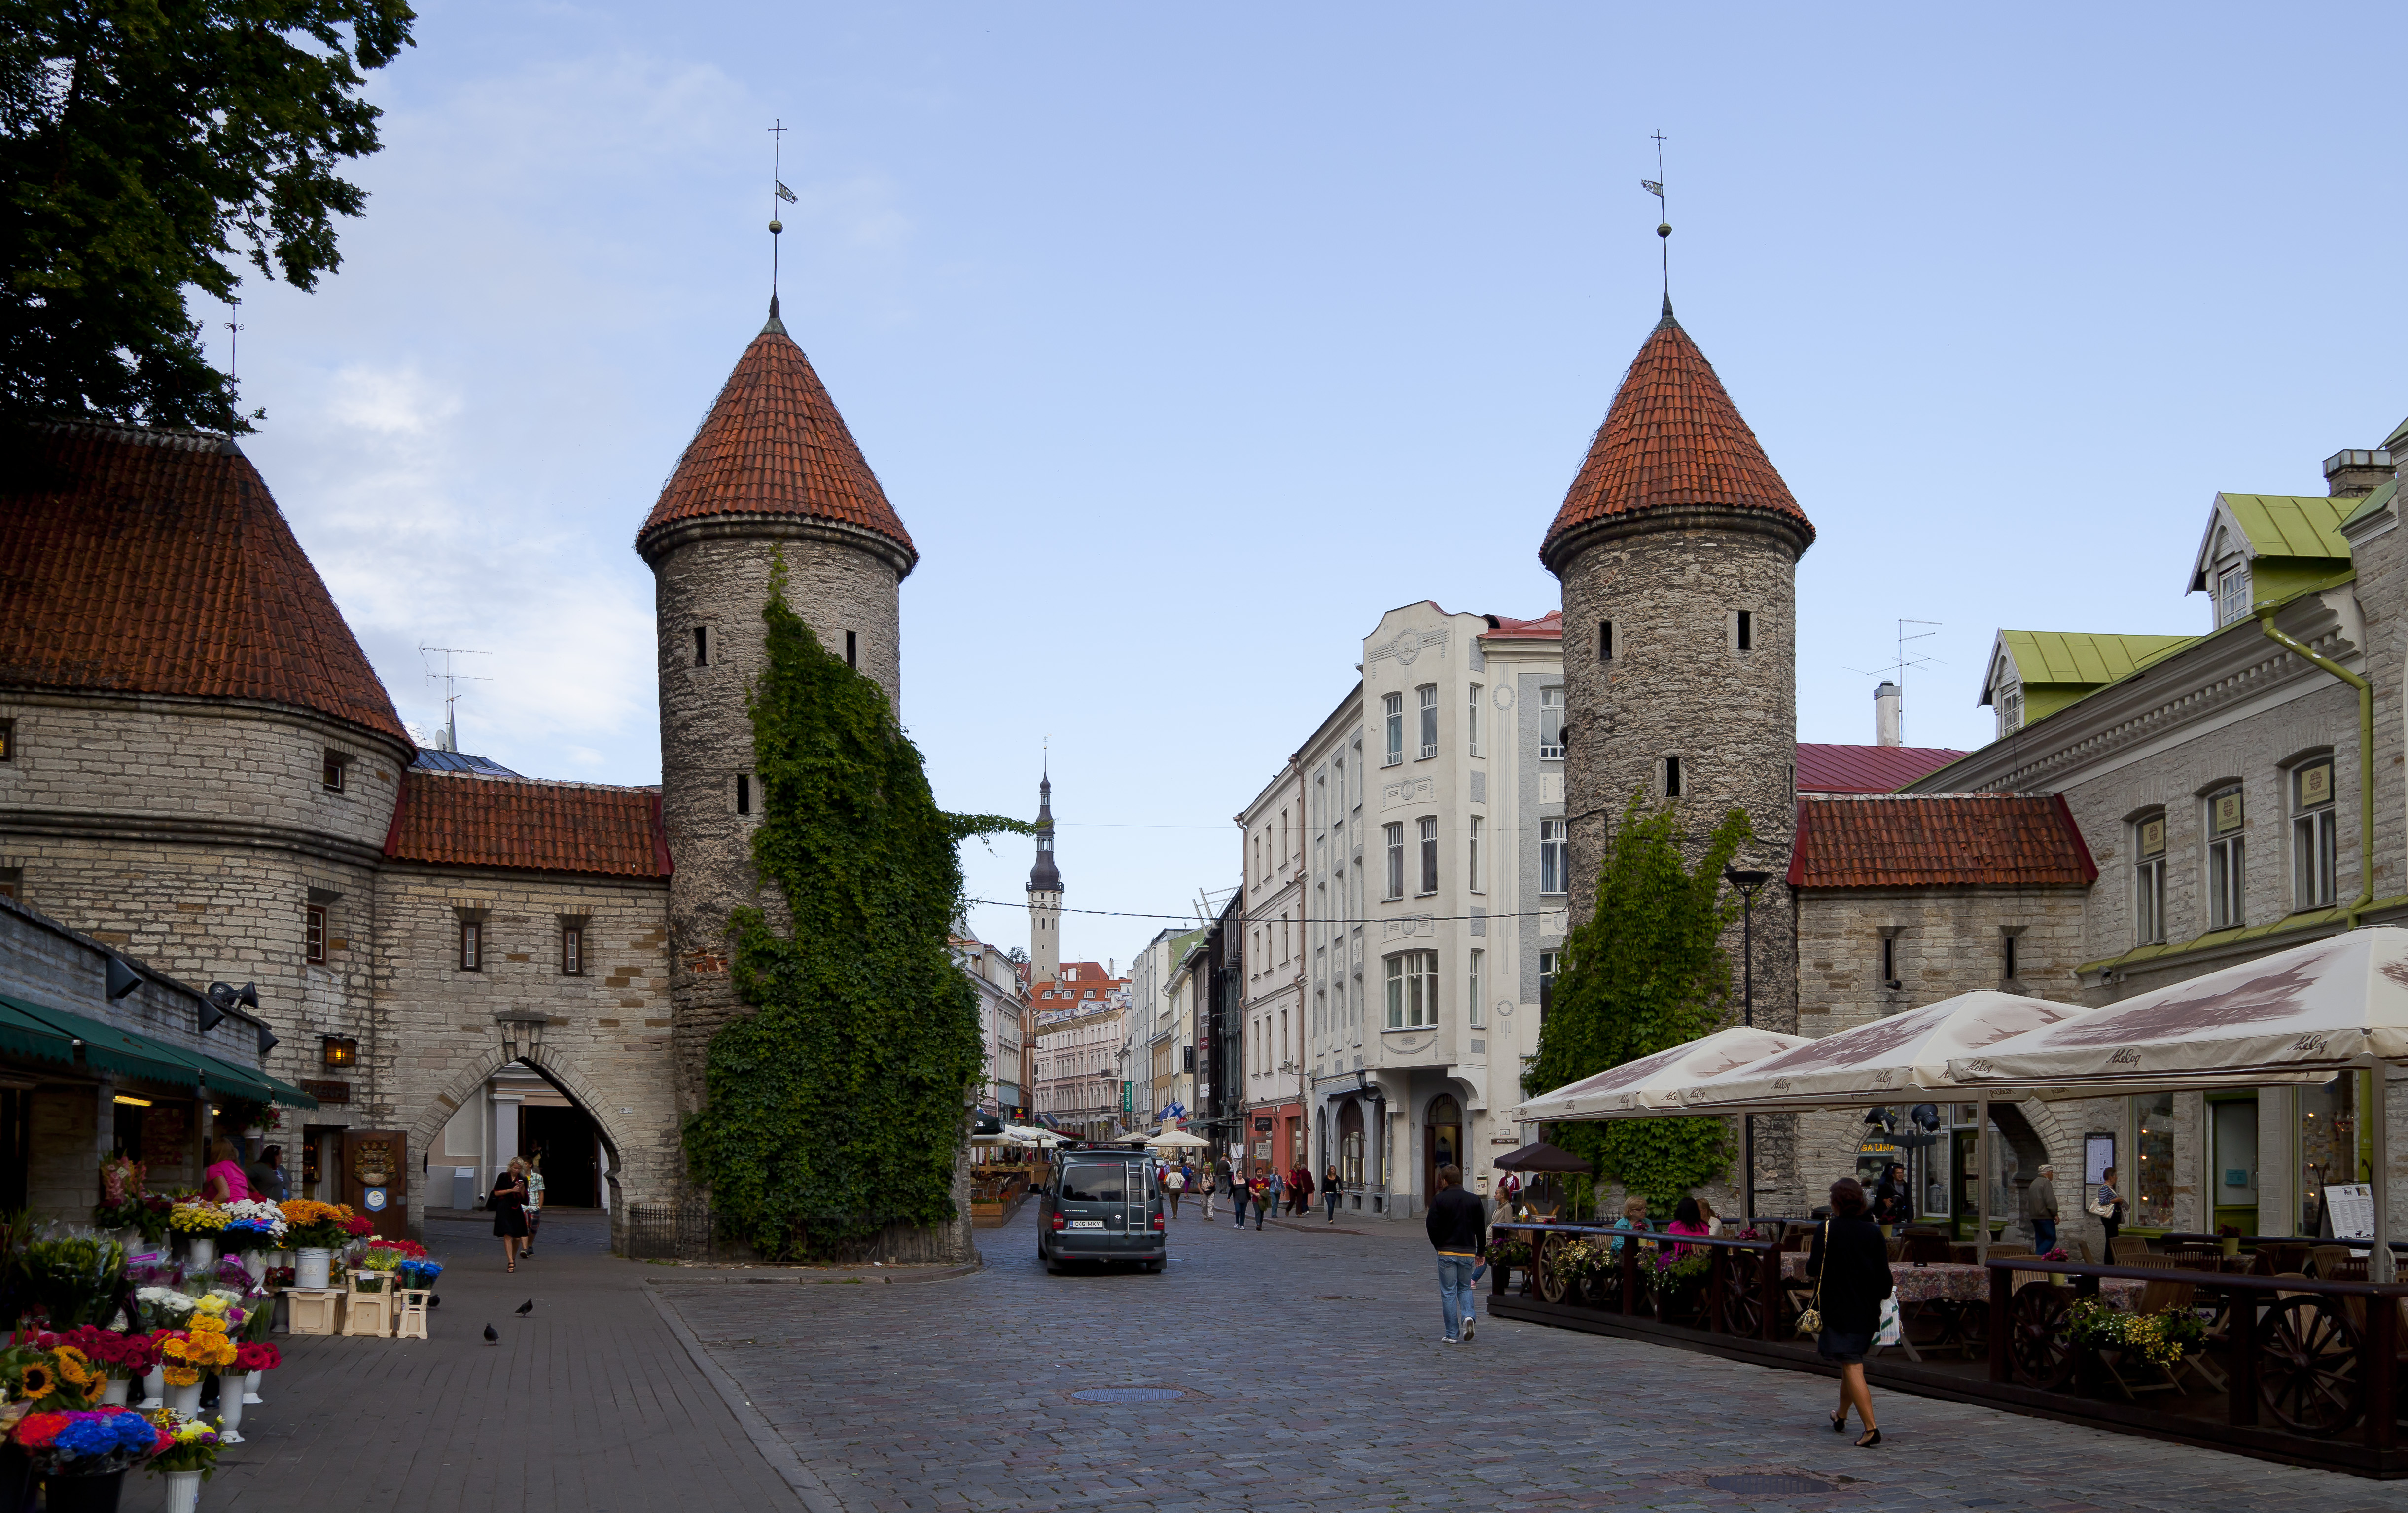 https://upload.wikimedia.org/wikipedia/commons/e/e2/Puerta_de_Viru%2C_Tallinn%2C_Estonia%2C_2012-08-05%2C_DD_11.JPG